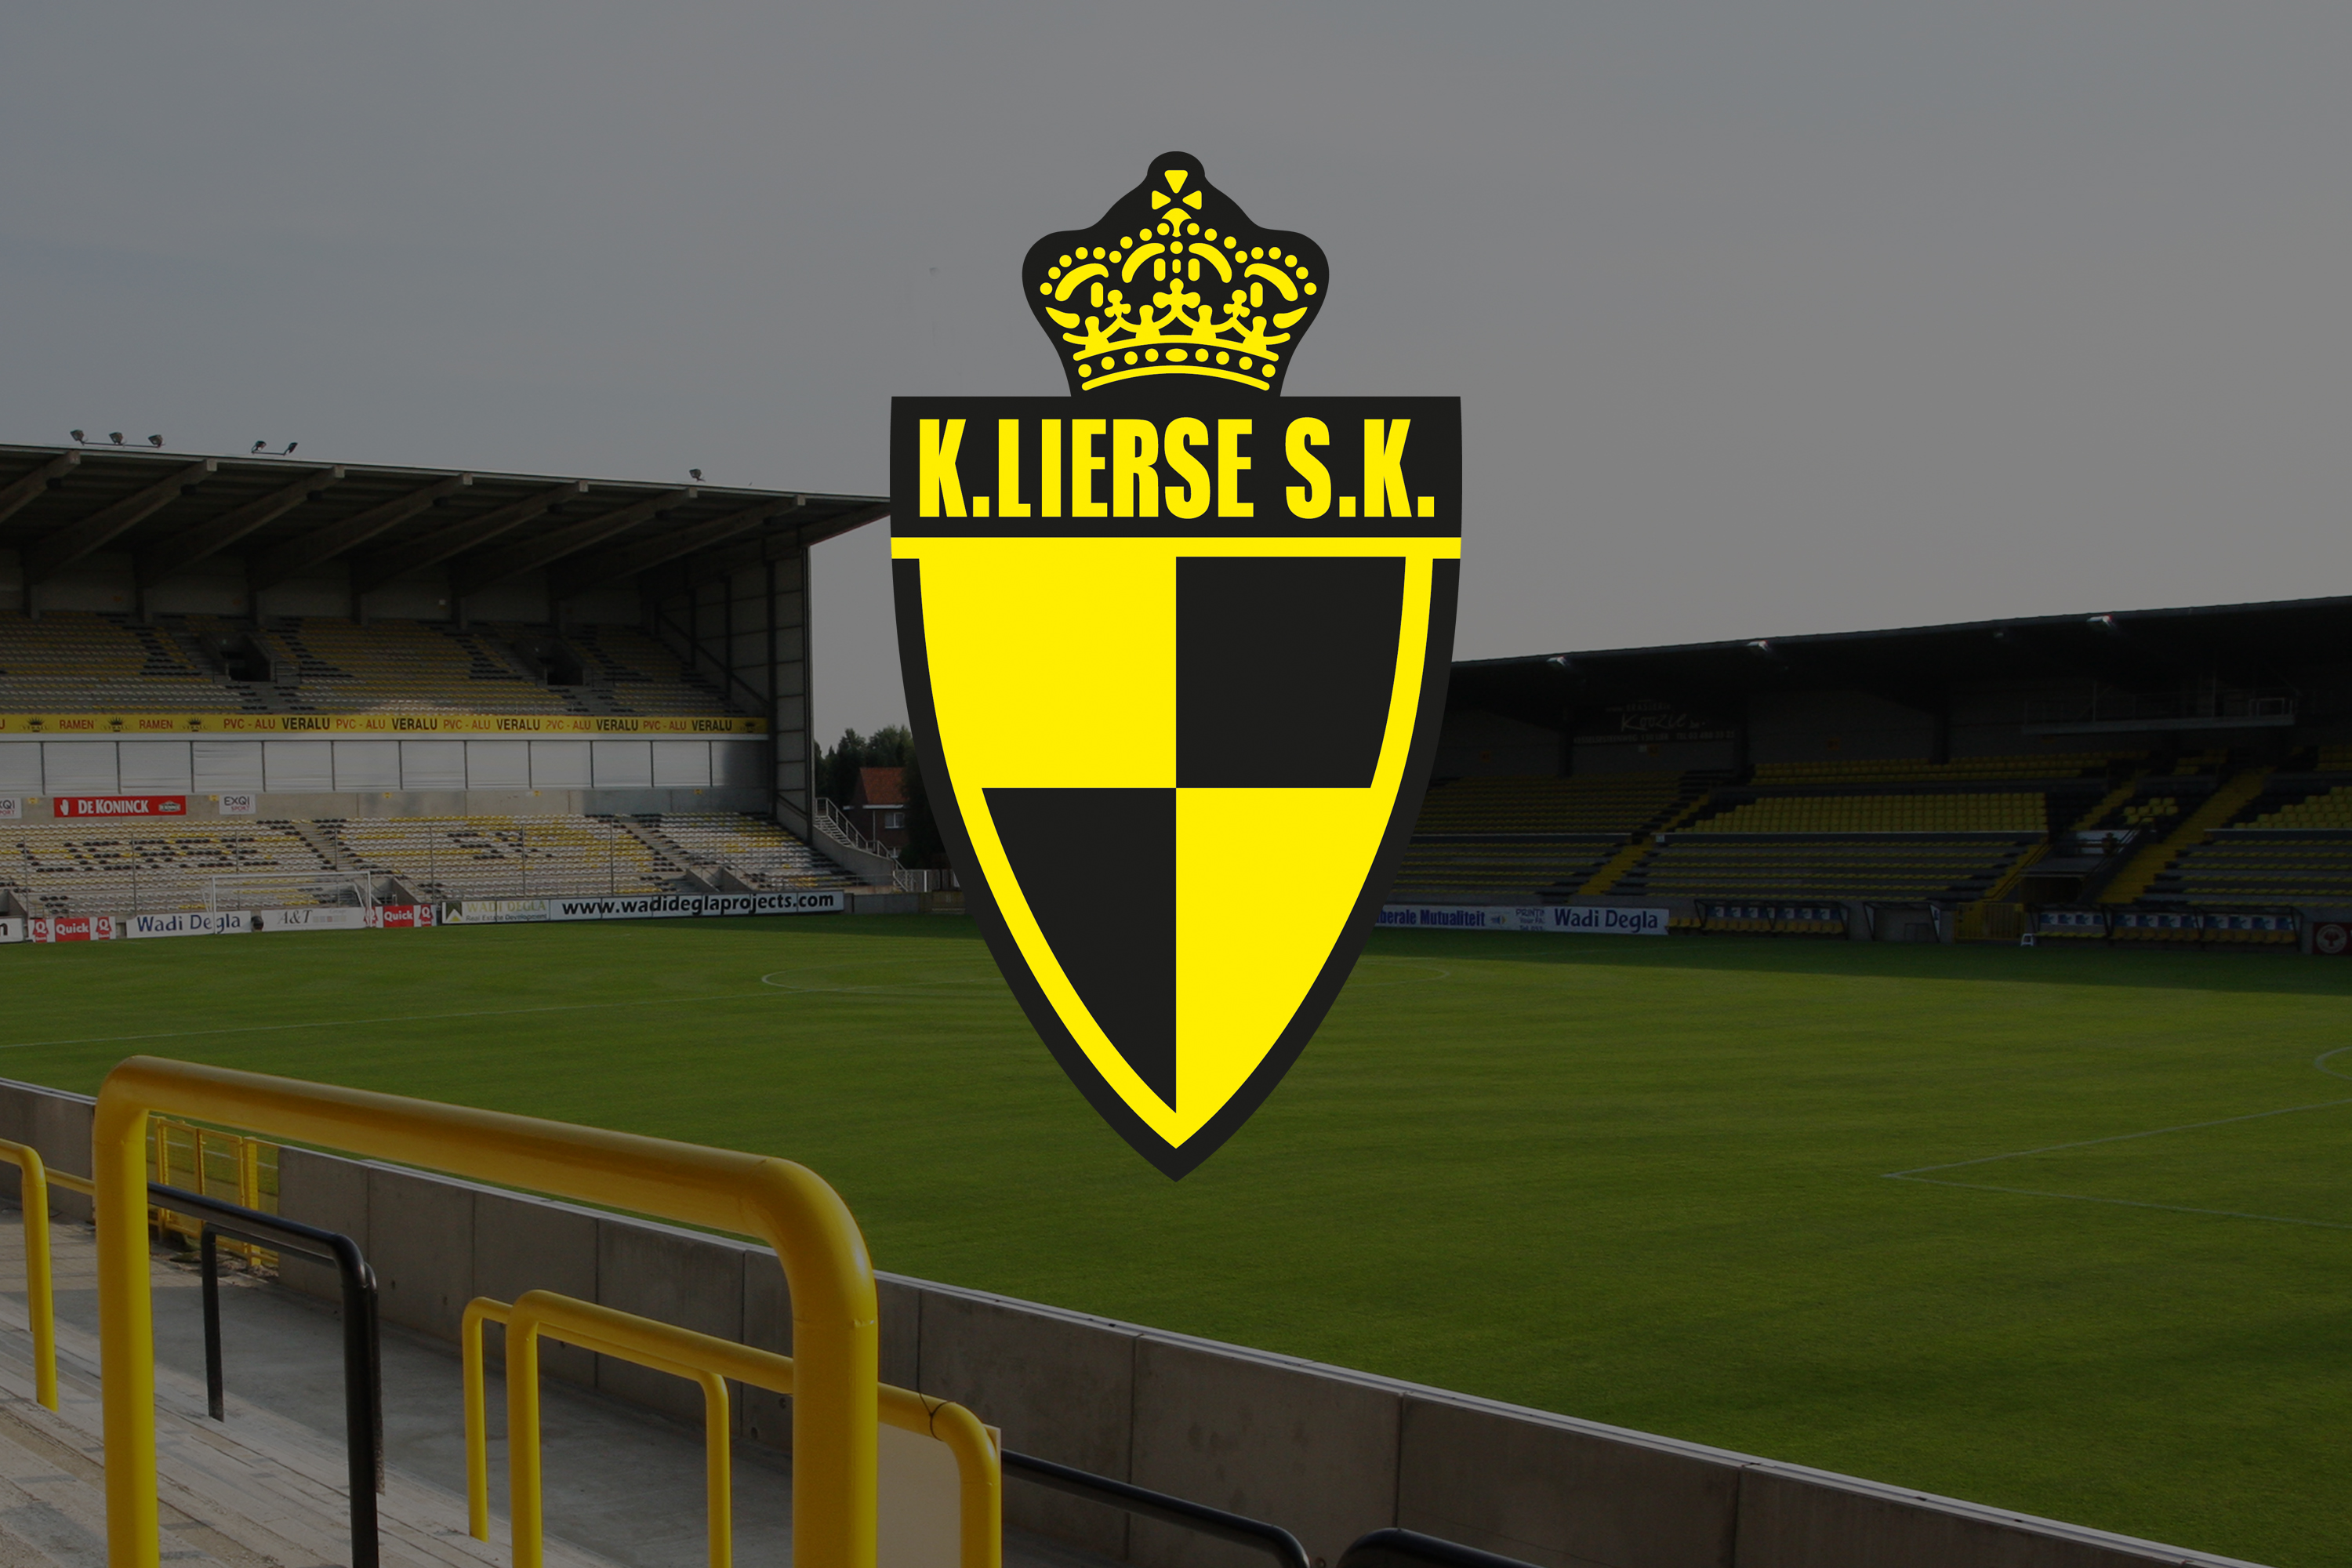 lierse-website-image-nieuws-placeholder-